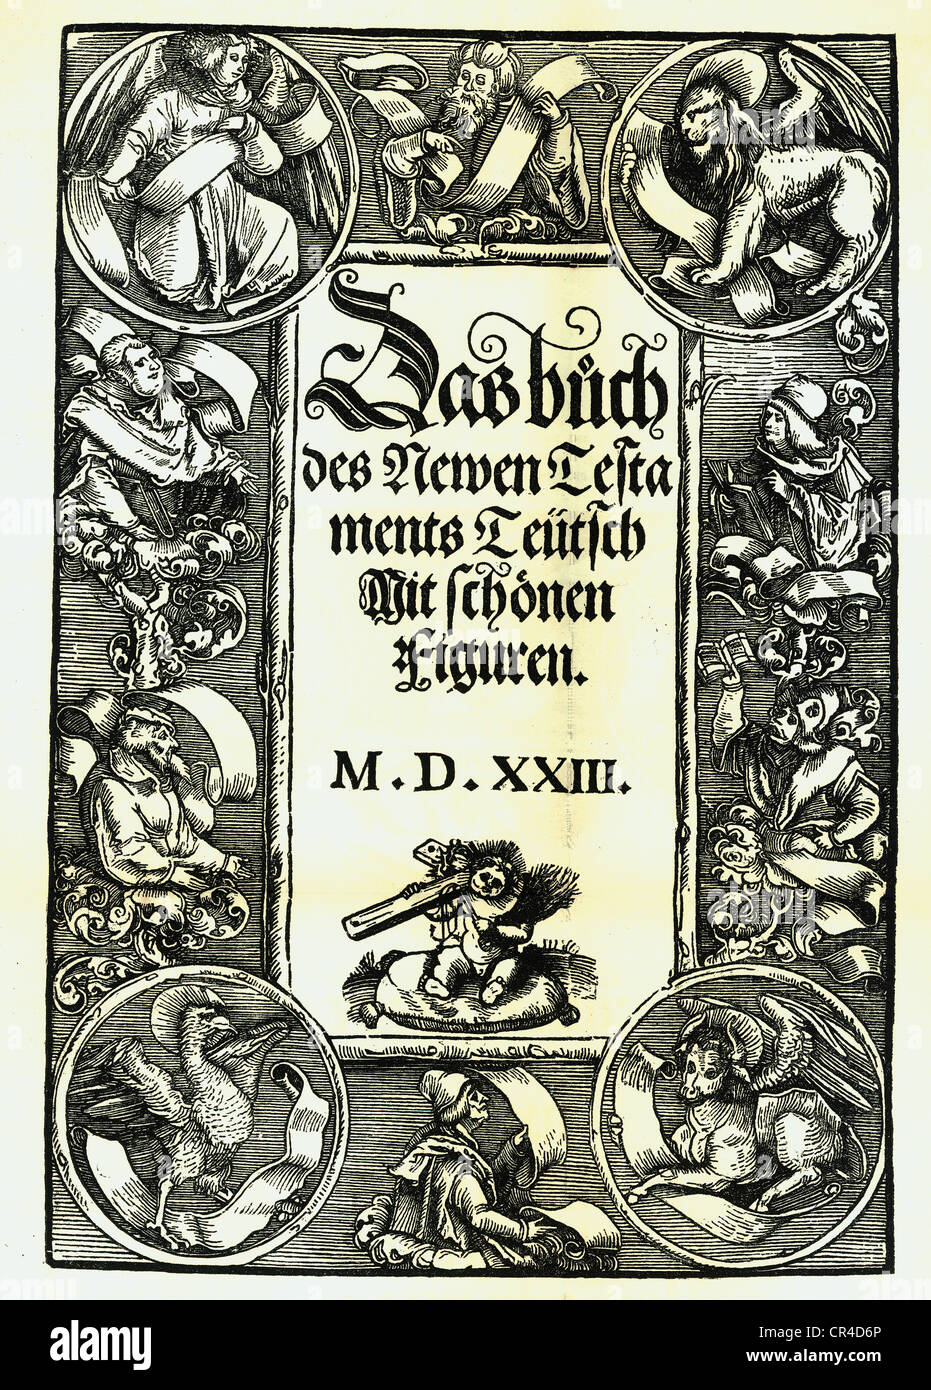 Martin Luther New Testament from 1523, title page